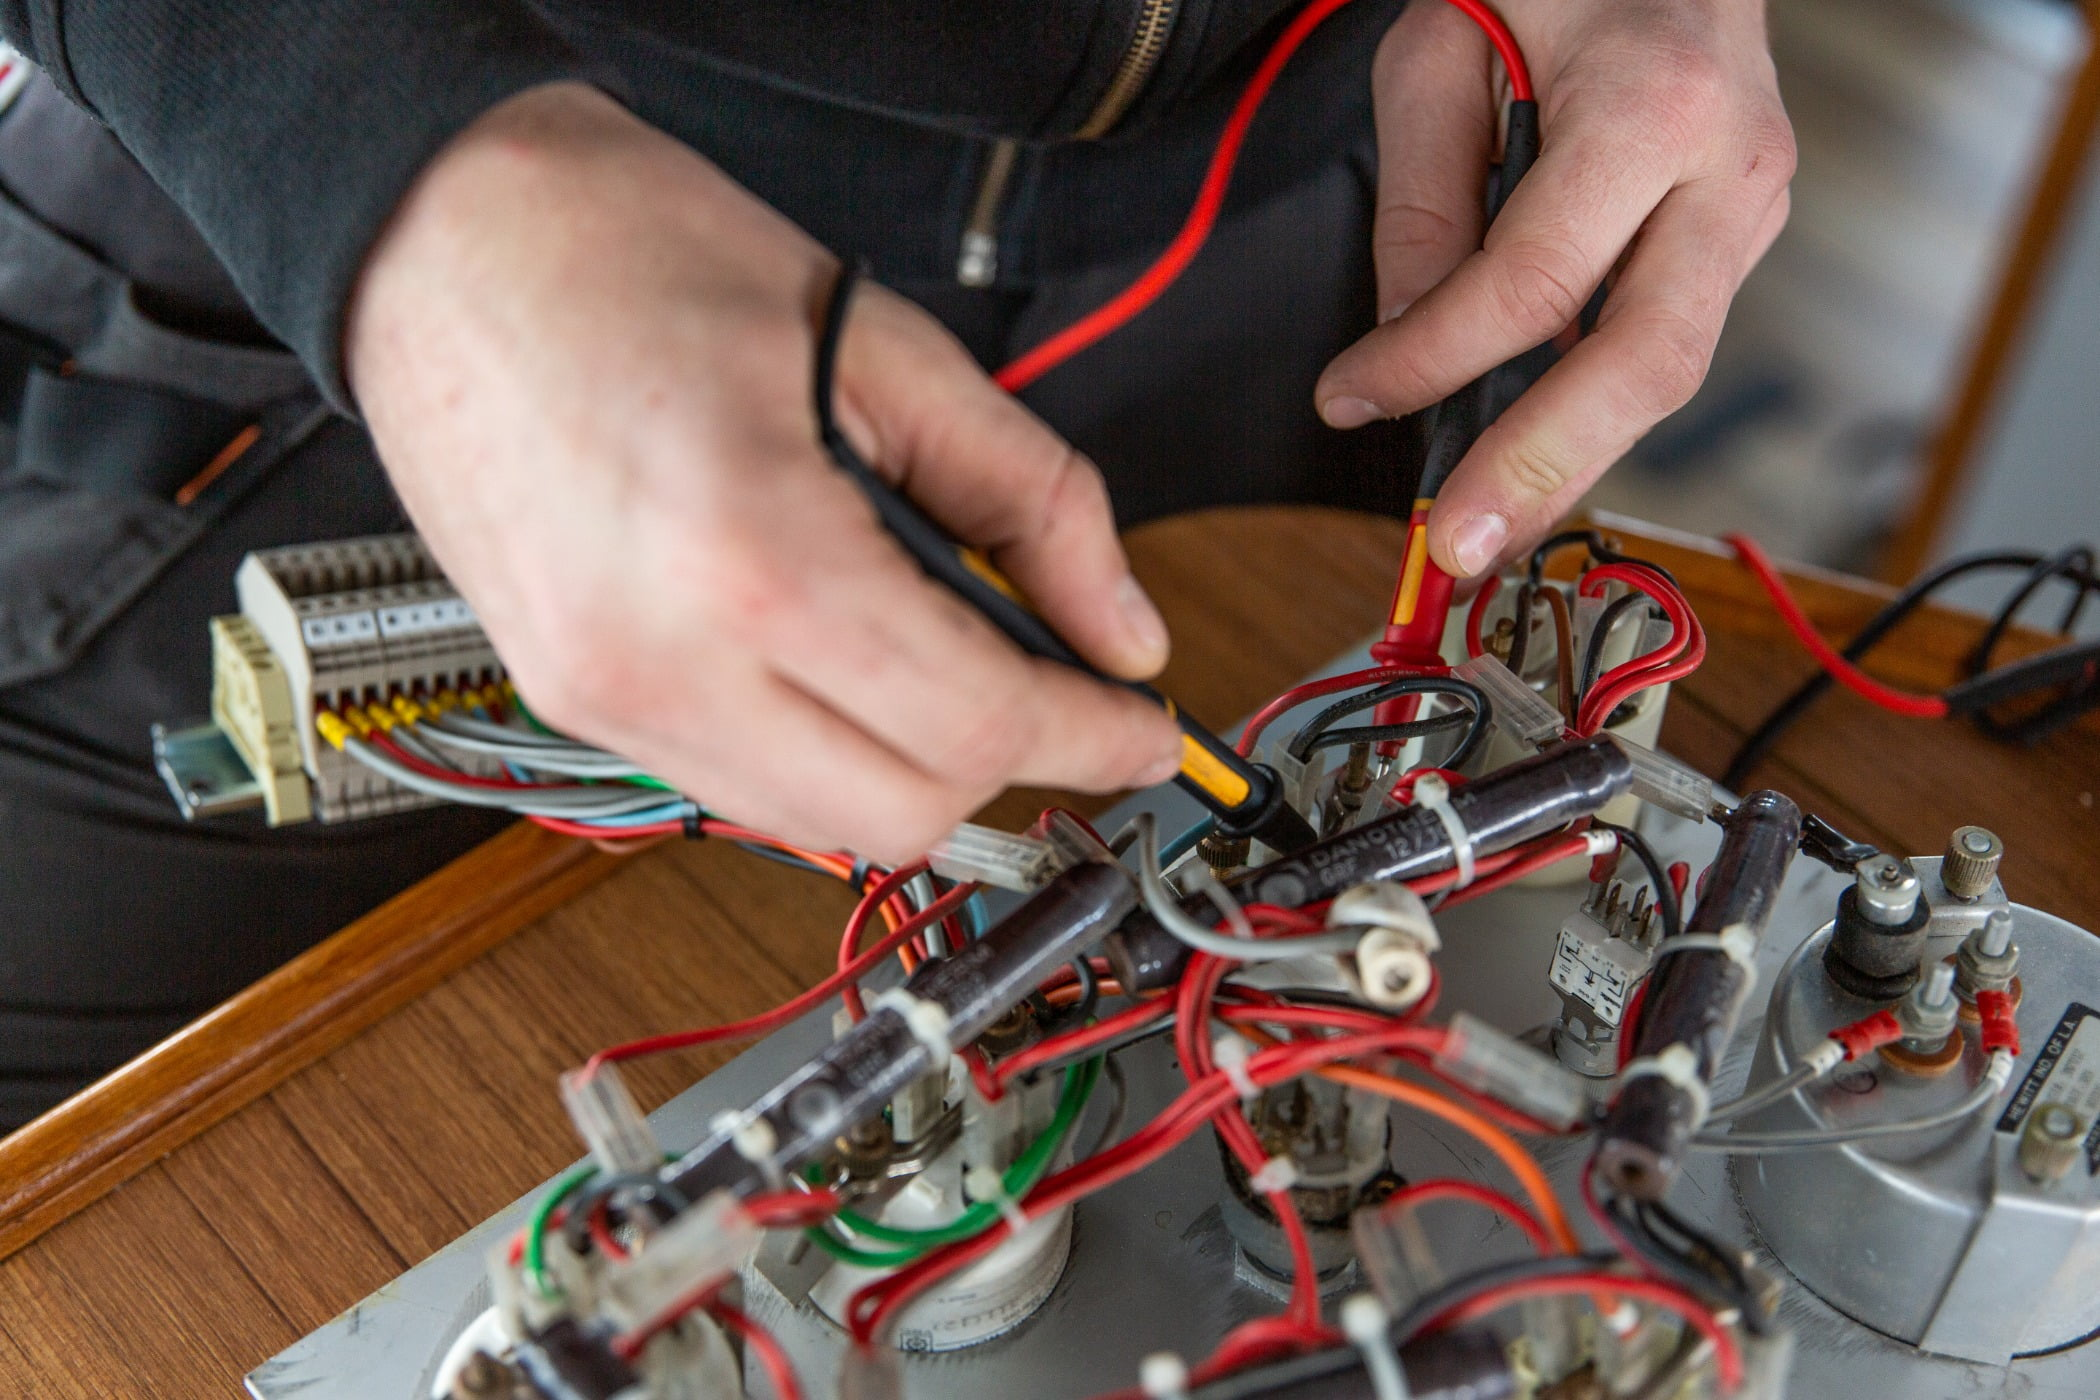 Circuit component, Electrical wiring, Hardware programmer, Electrician